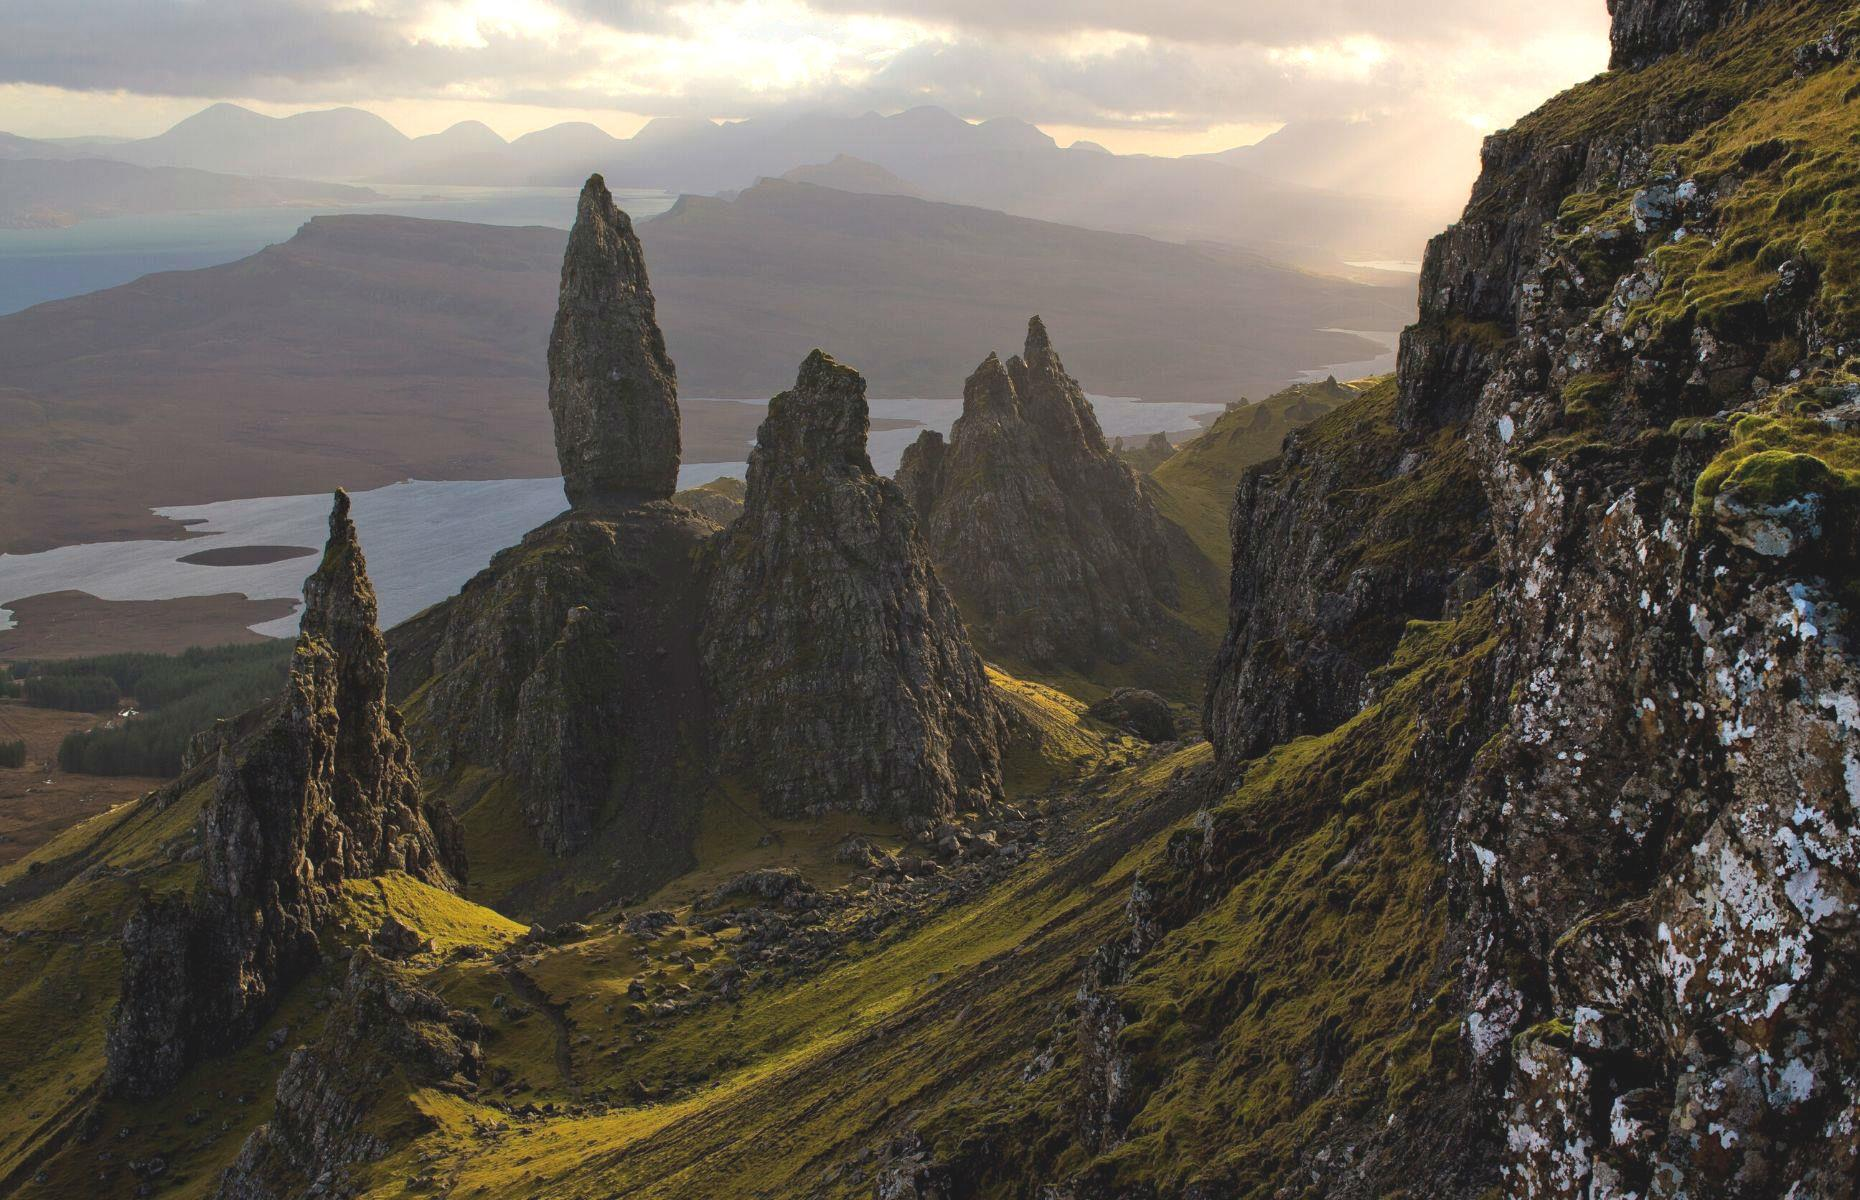 Slide 19 of 59: Perched around 2,300 feet (700m) up on Trotternish Ridge, The Old Man Of Storr is one of Scotland's most recognizable natural landmarks. Characterized by its towering rocky pinnacles, this theatrical monument is shrouded by folklore tales. Legend has it the Old Man was a giant, who upon being buried in the earth, left his thumb exposed.